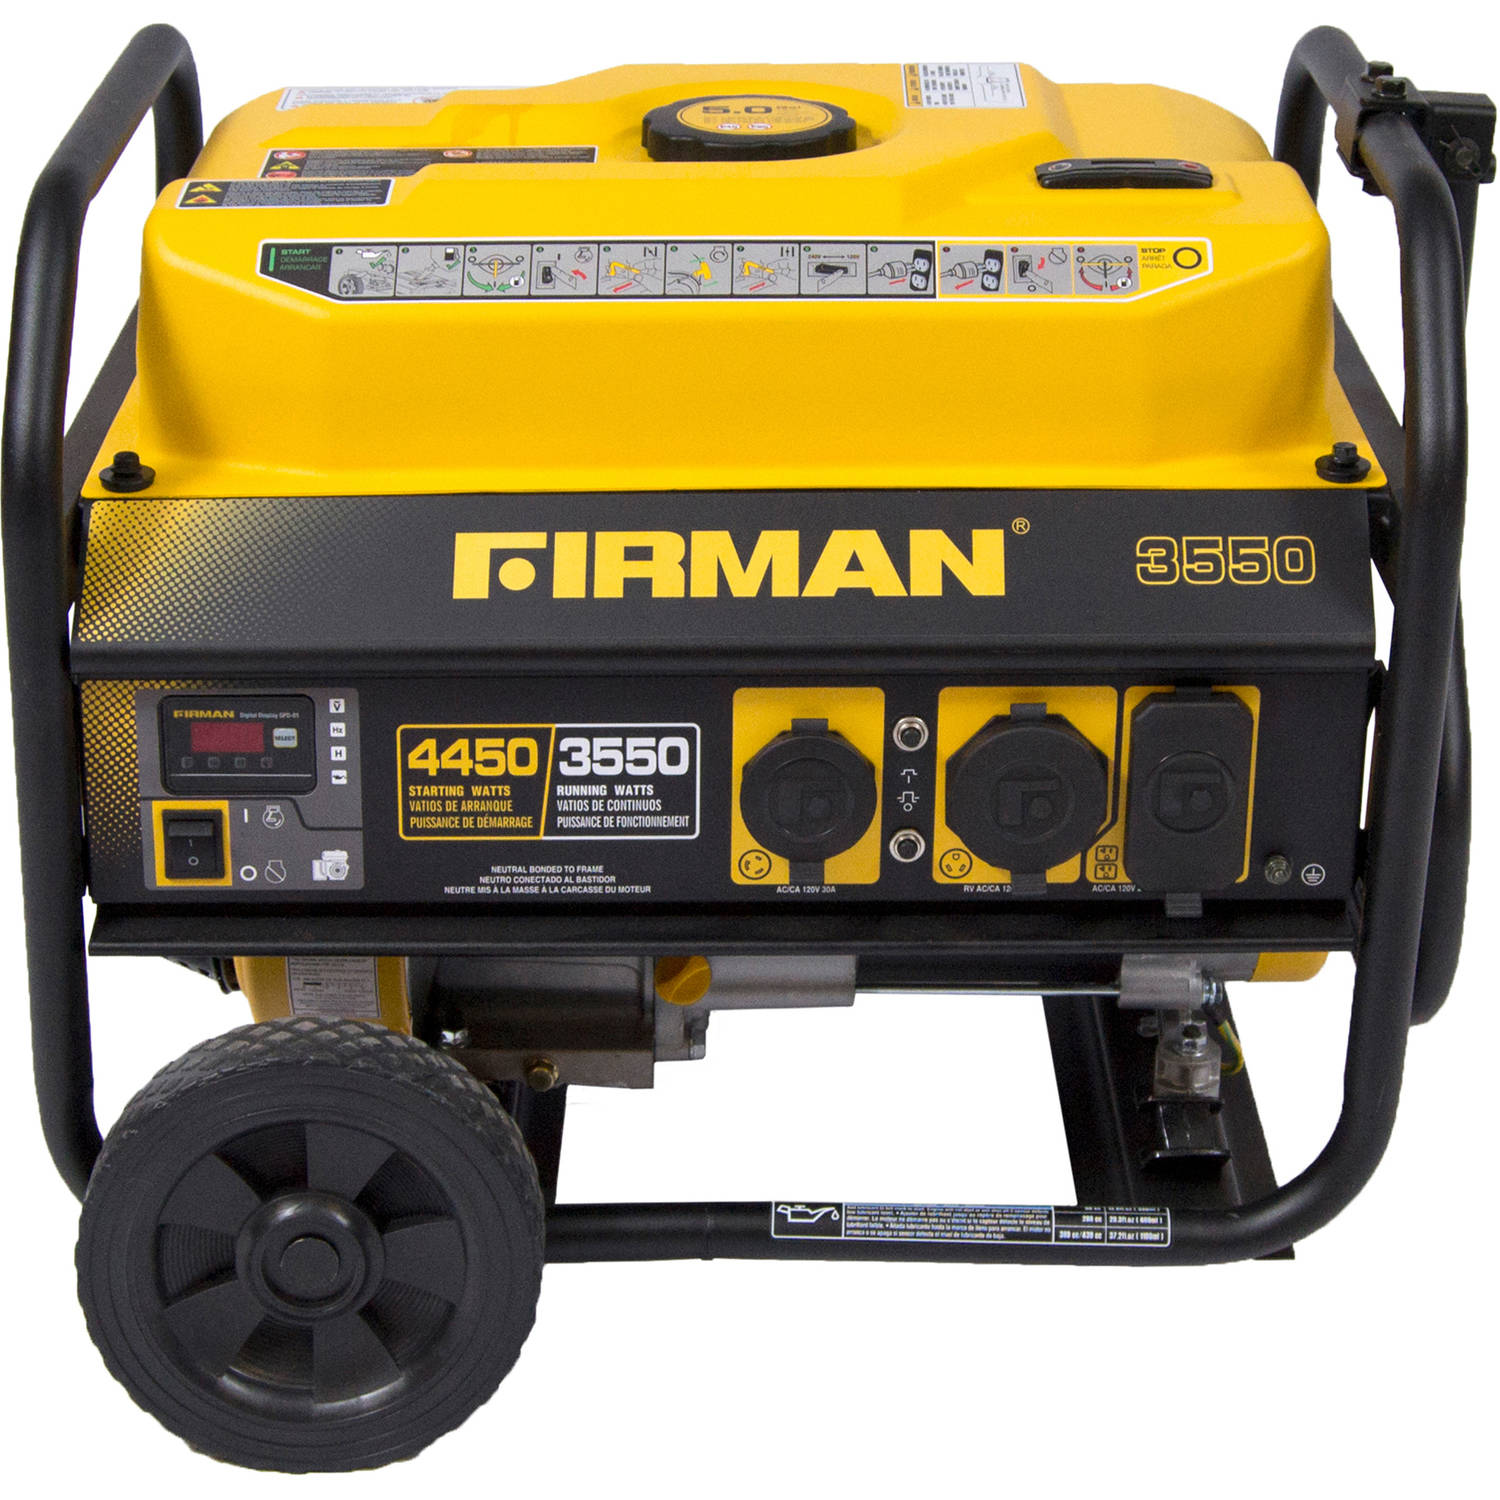 Firman Power Equipment P03501 Gas Powered 3550/4450 Watt (Performance Series) Extended Run Time Portable Generator with Wheel Kit and Cover